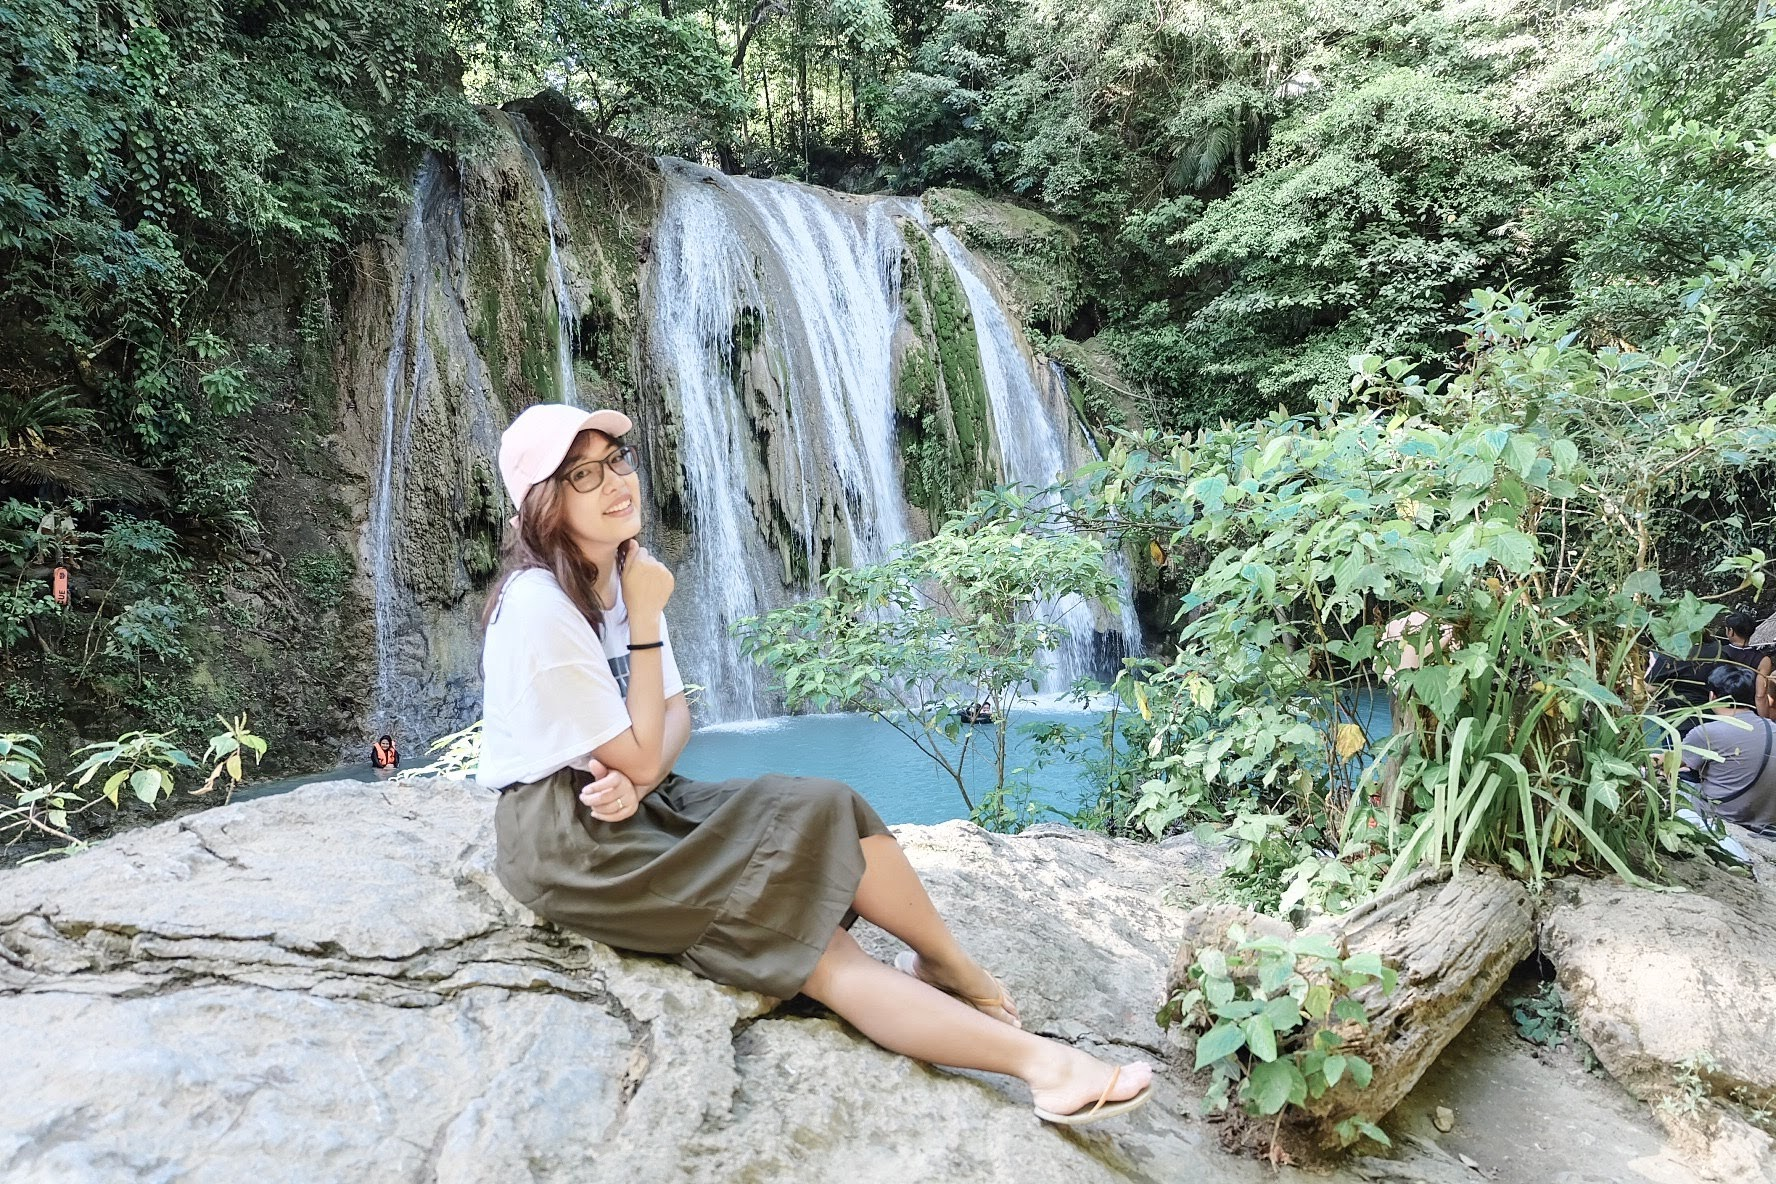 A girl sitting in a rock with Daranak Falls Tanay in her background